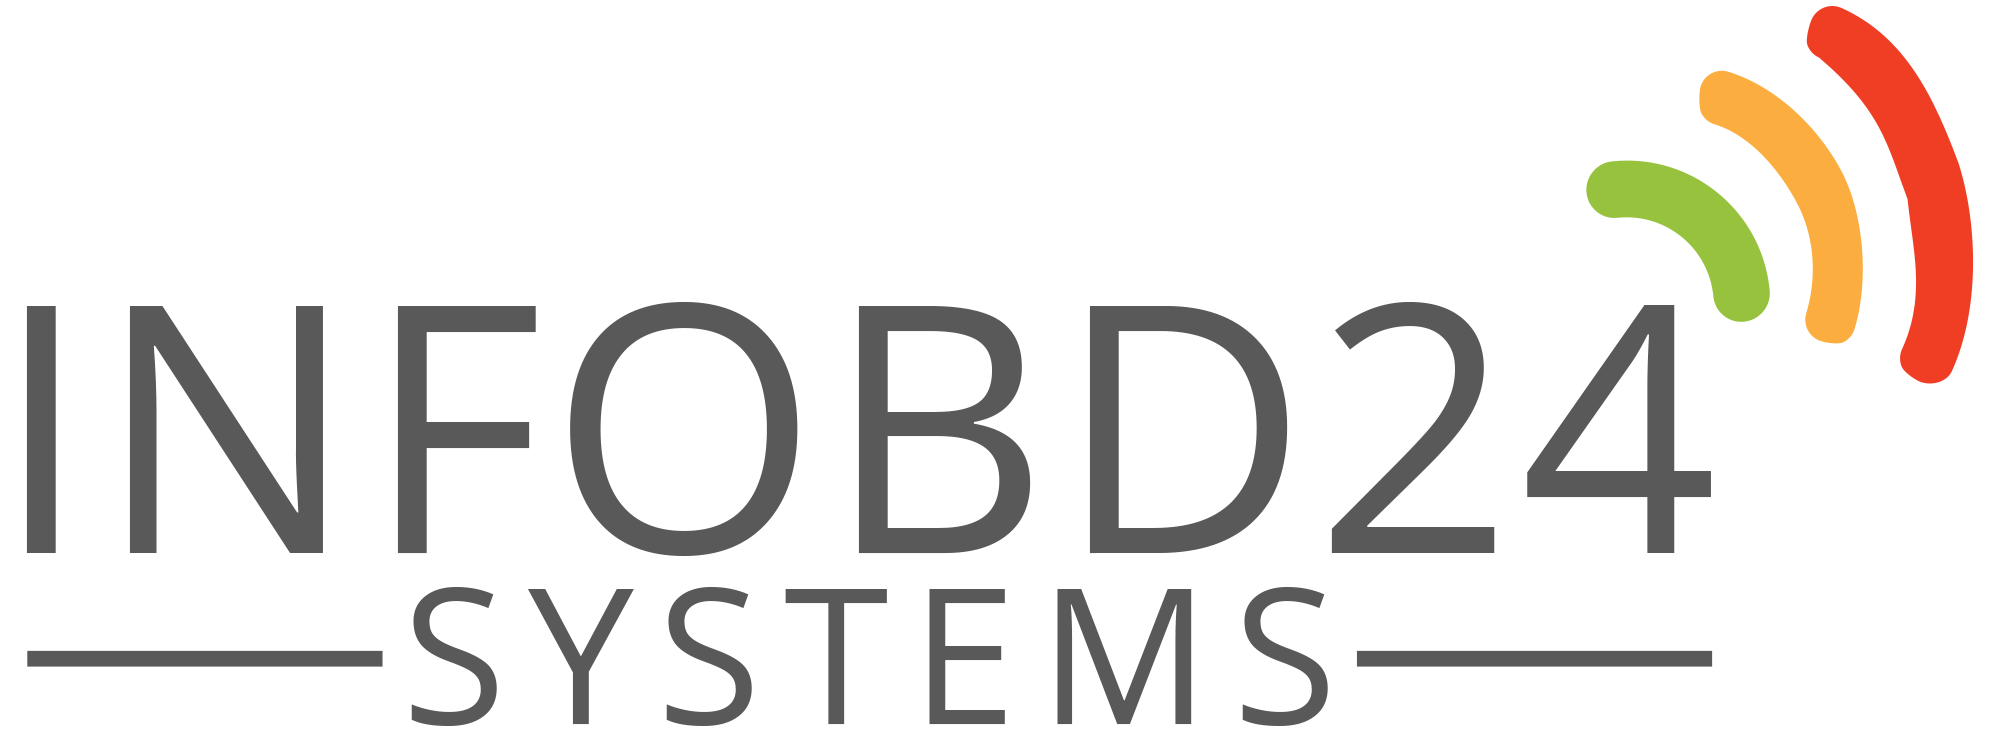 Infobd24 Systems